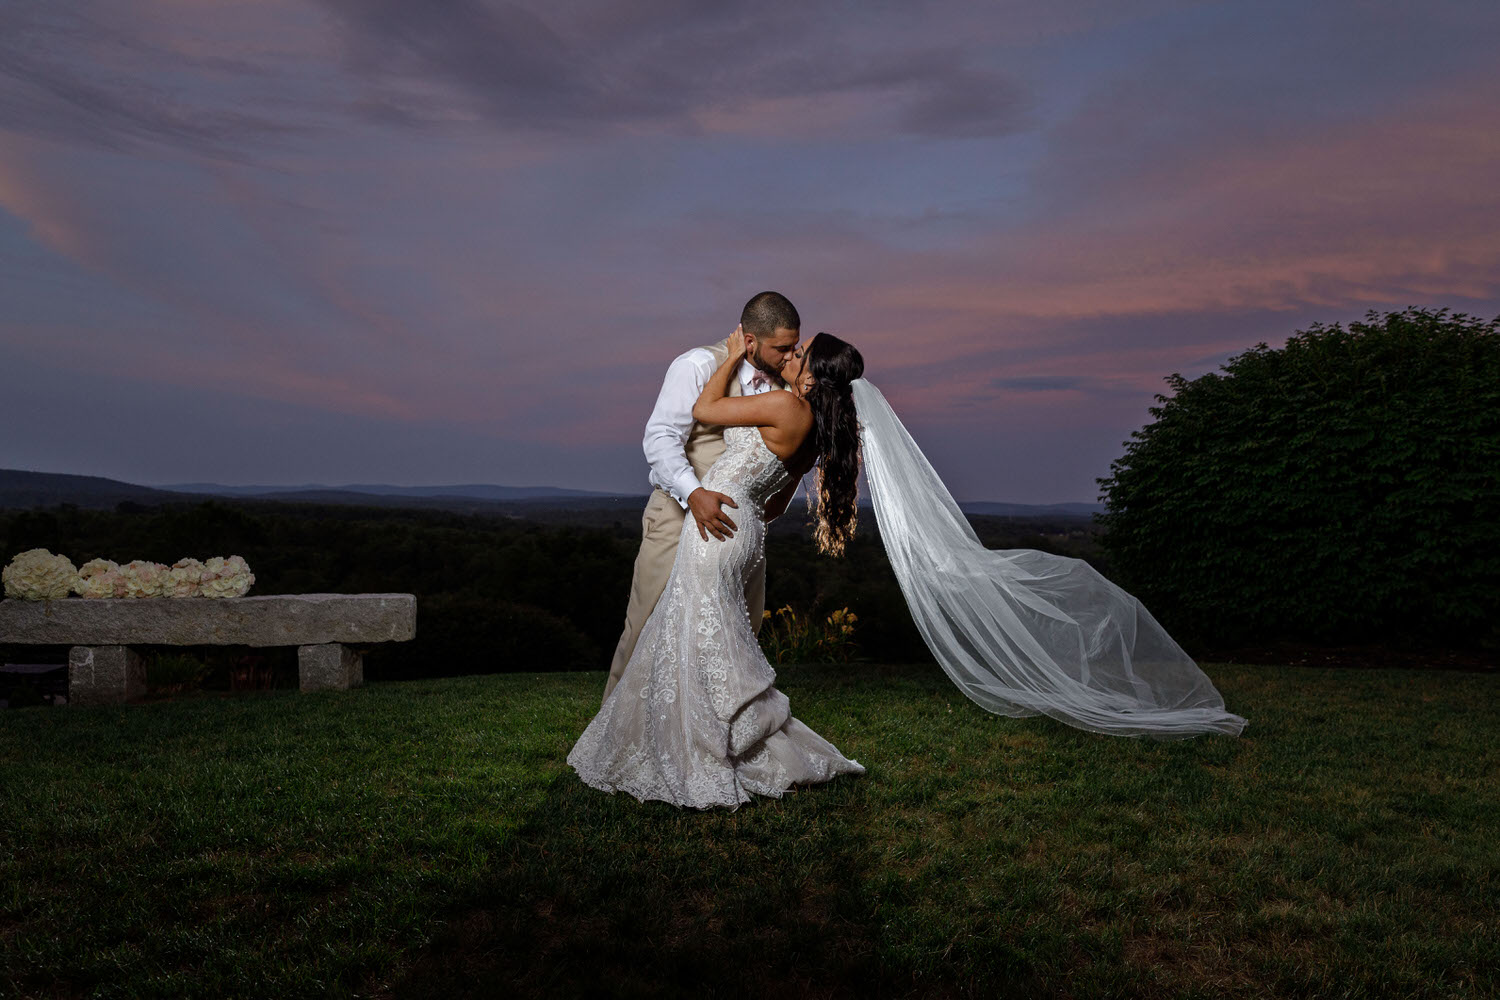 Groom dipping bride at sunset at Mountain Rose Inn